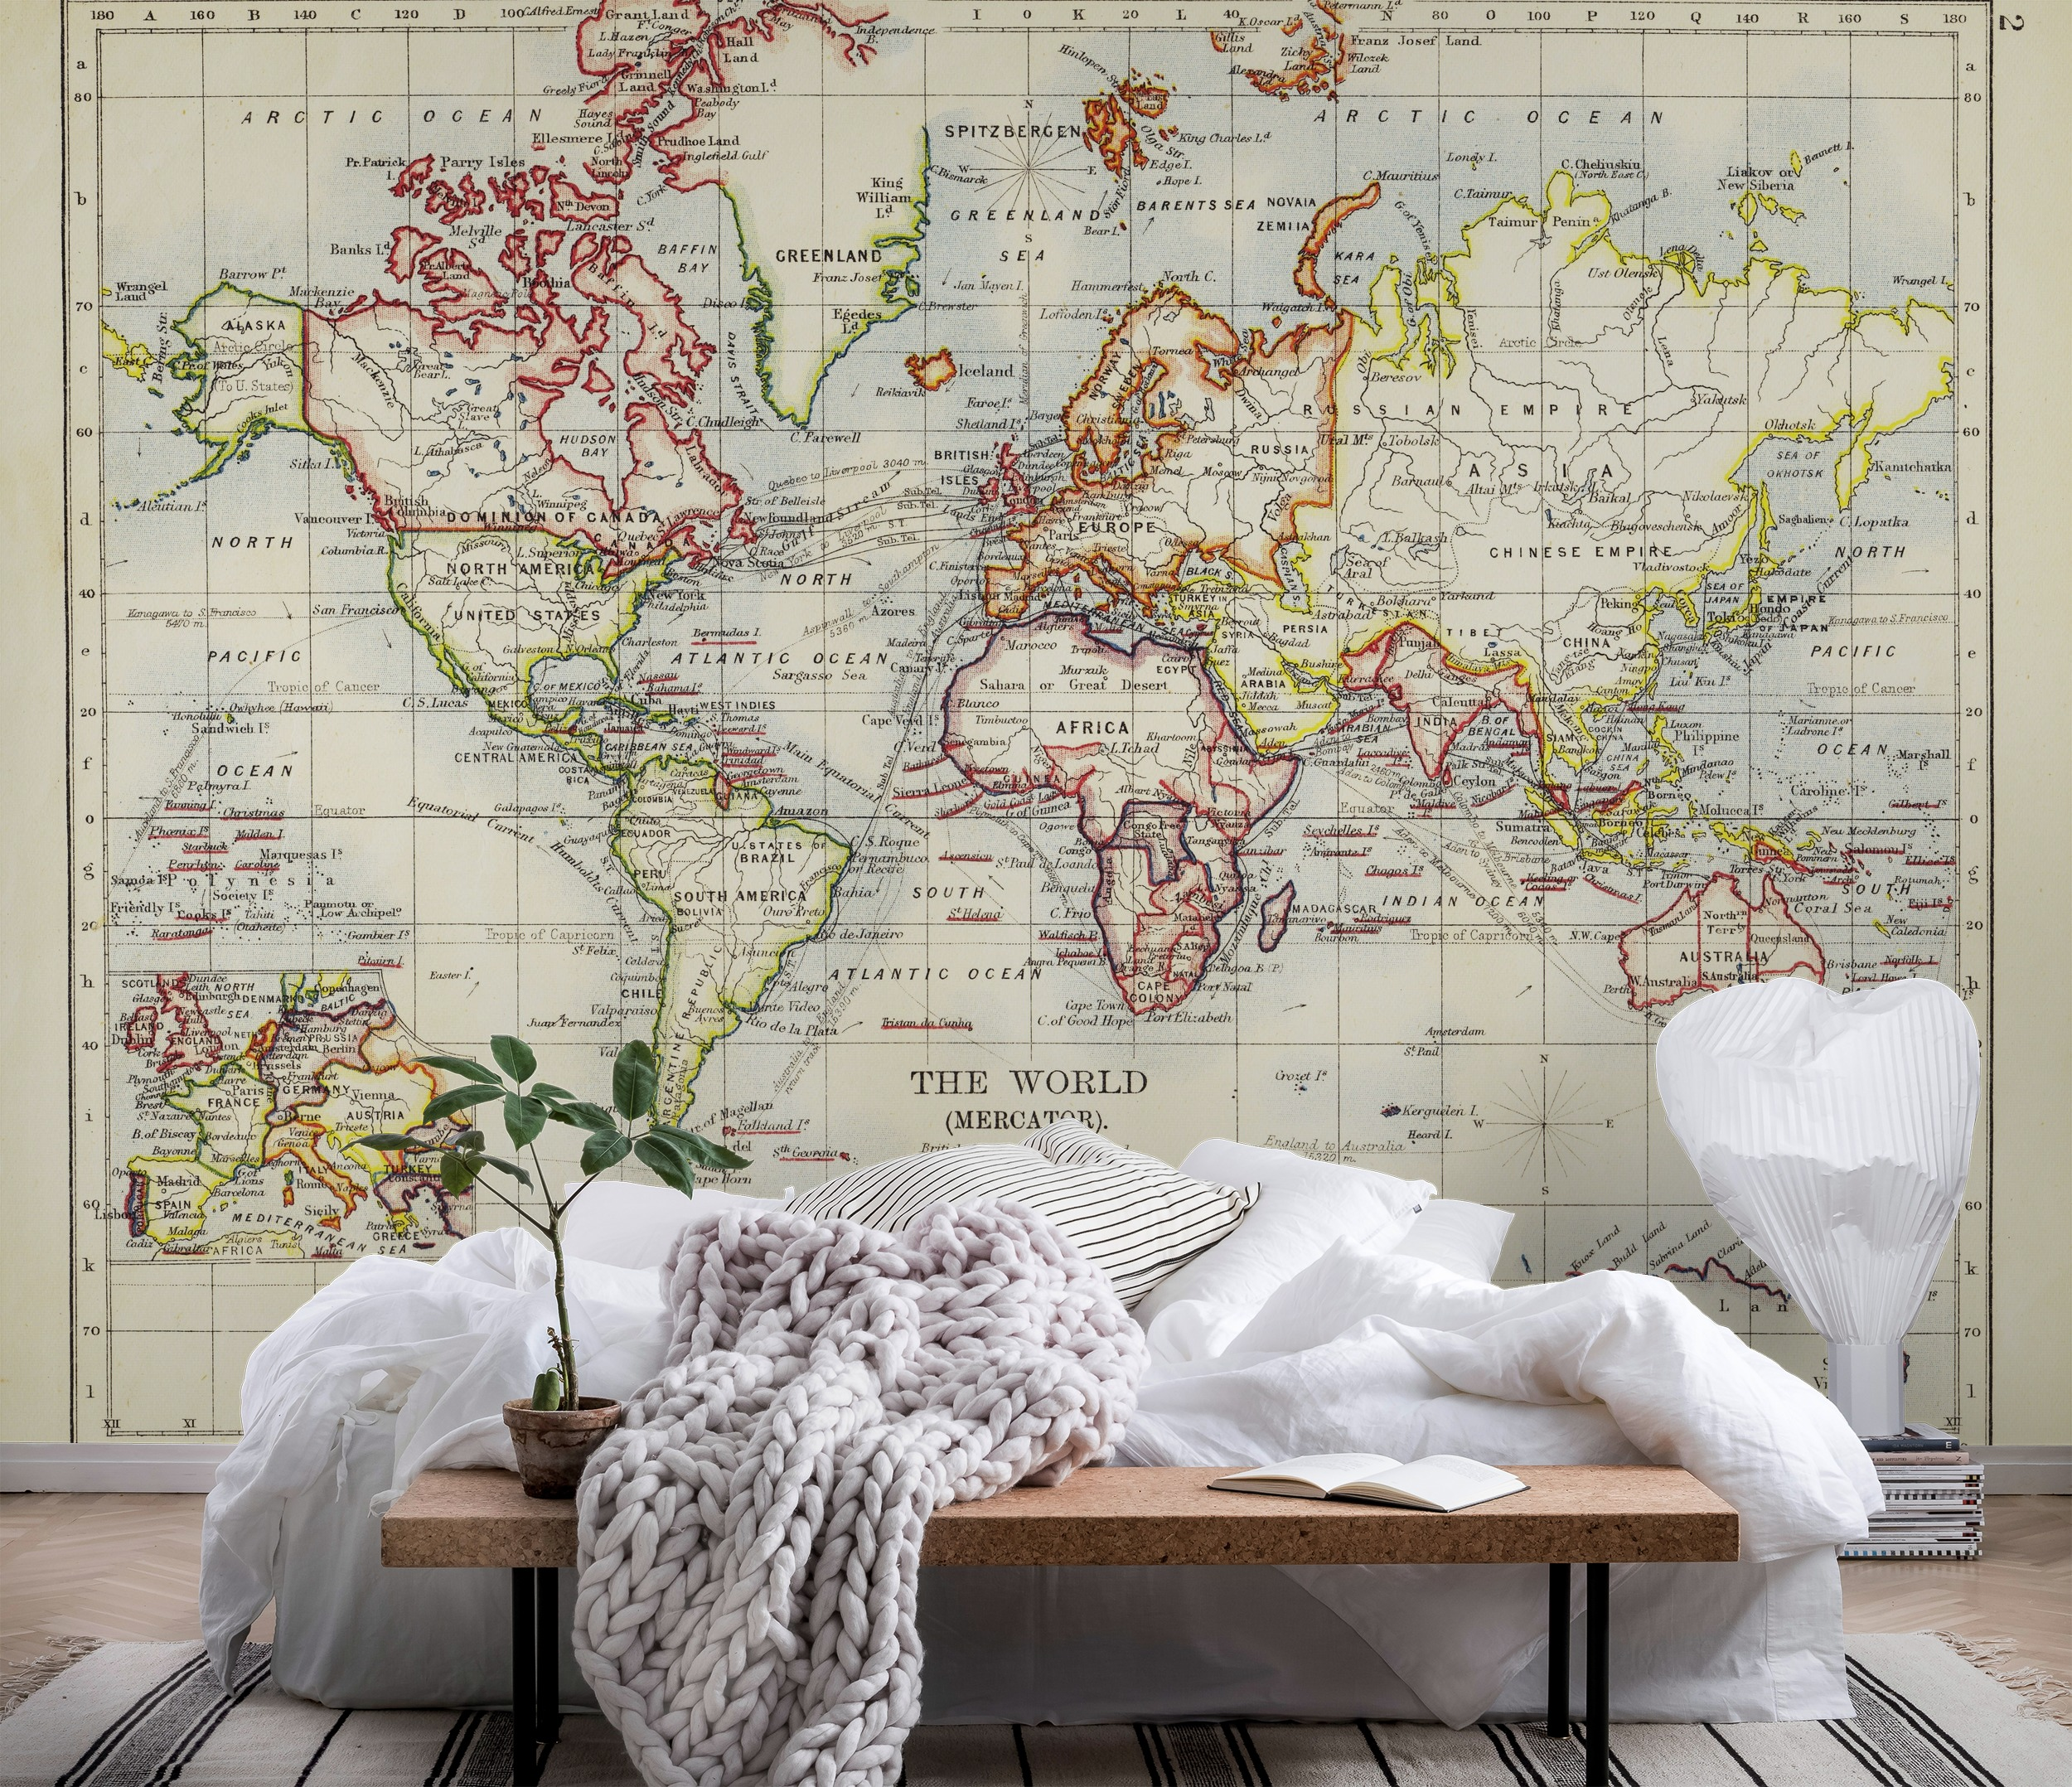 Wall mural old world map photo wallpaper antique for Antique map mural